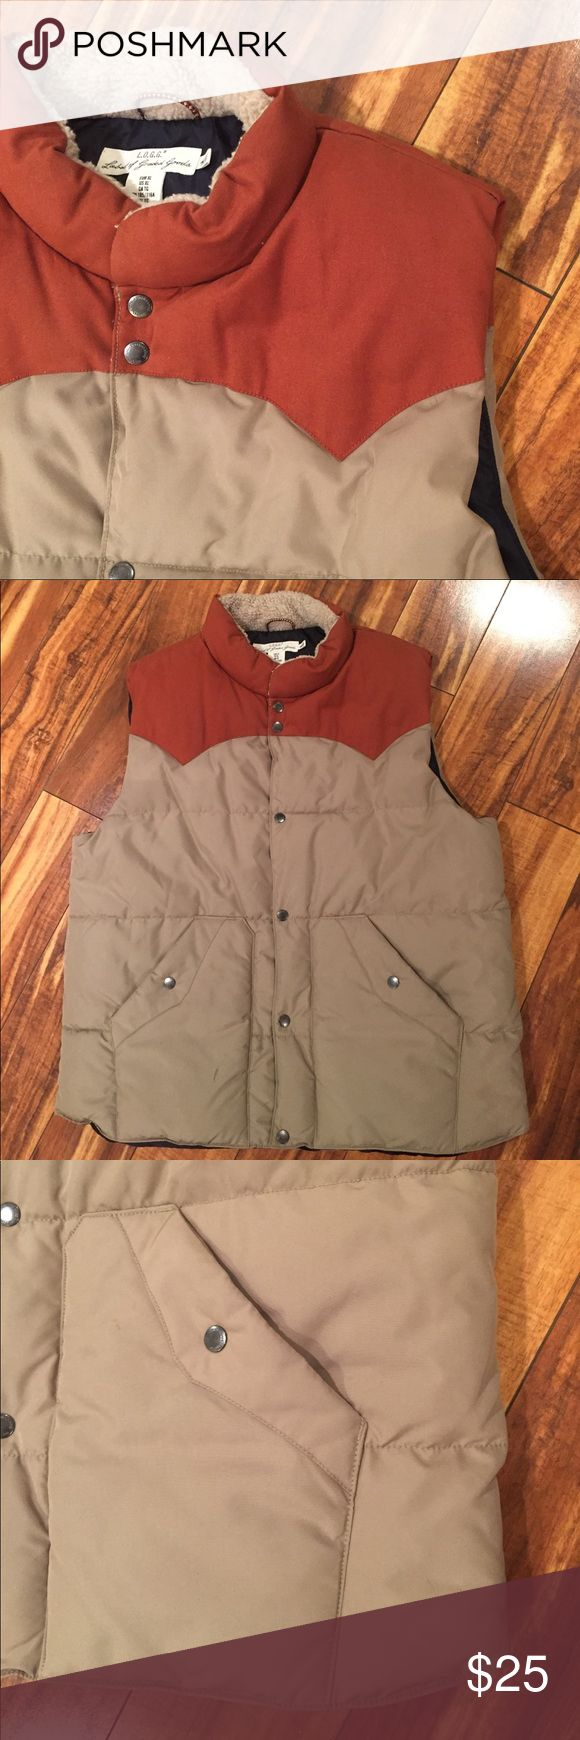 Nice Men's puffer vest 🍂 Rust and khaki puffer vest, in like new condition.  Inner pocket, two side pockets. H&M Jackets & Coats Vests